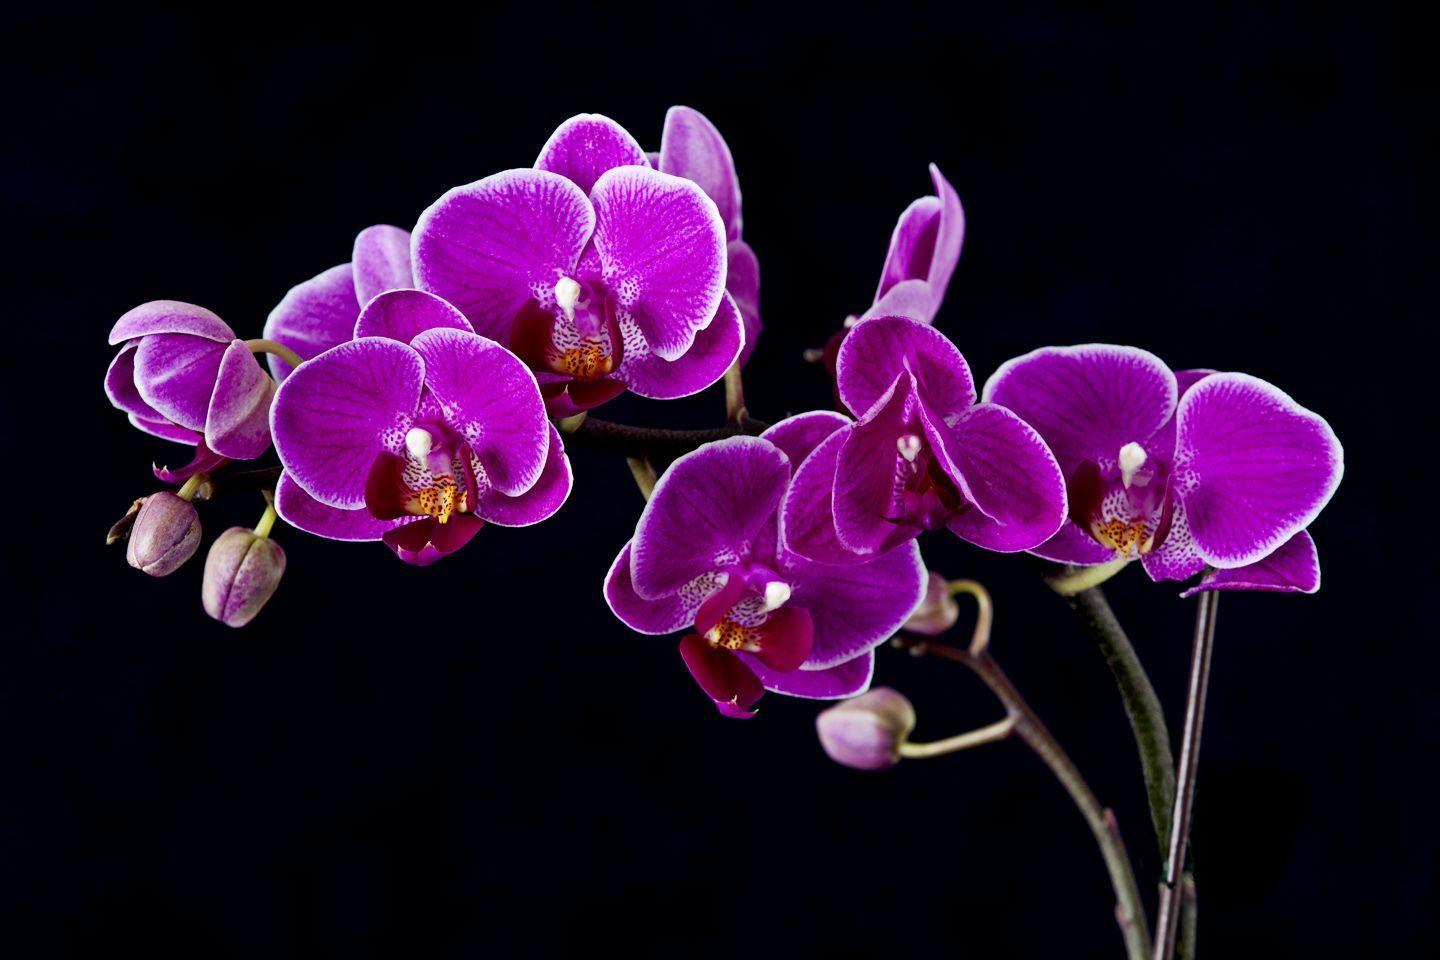 orchid wallpapers backgrounds images - photo #41